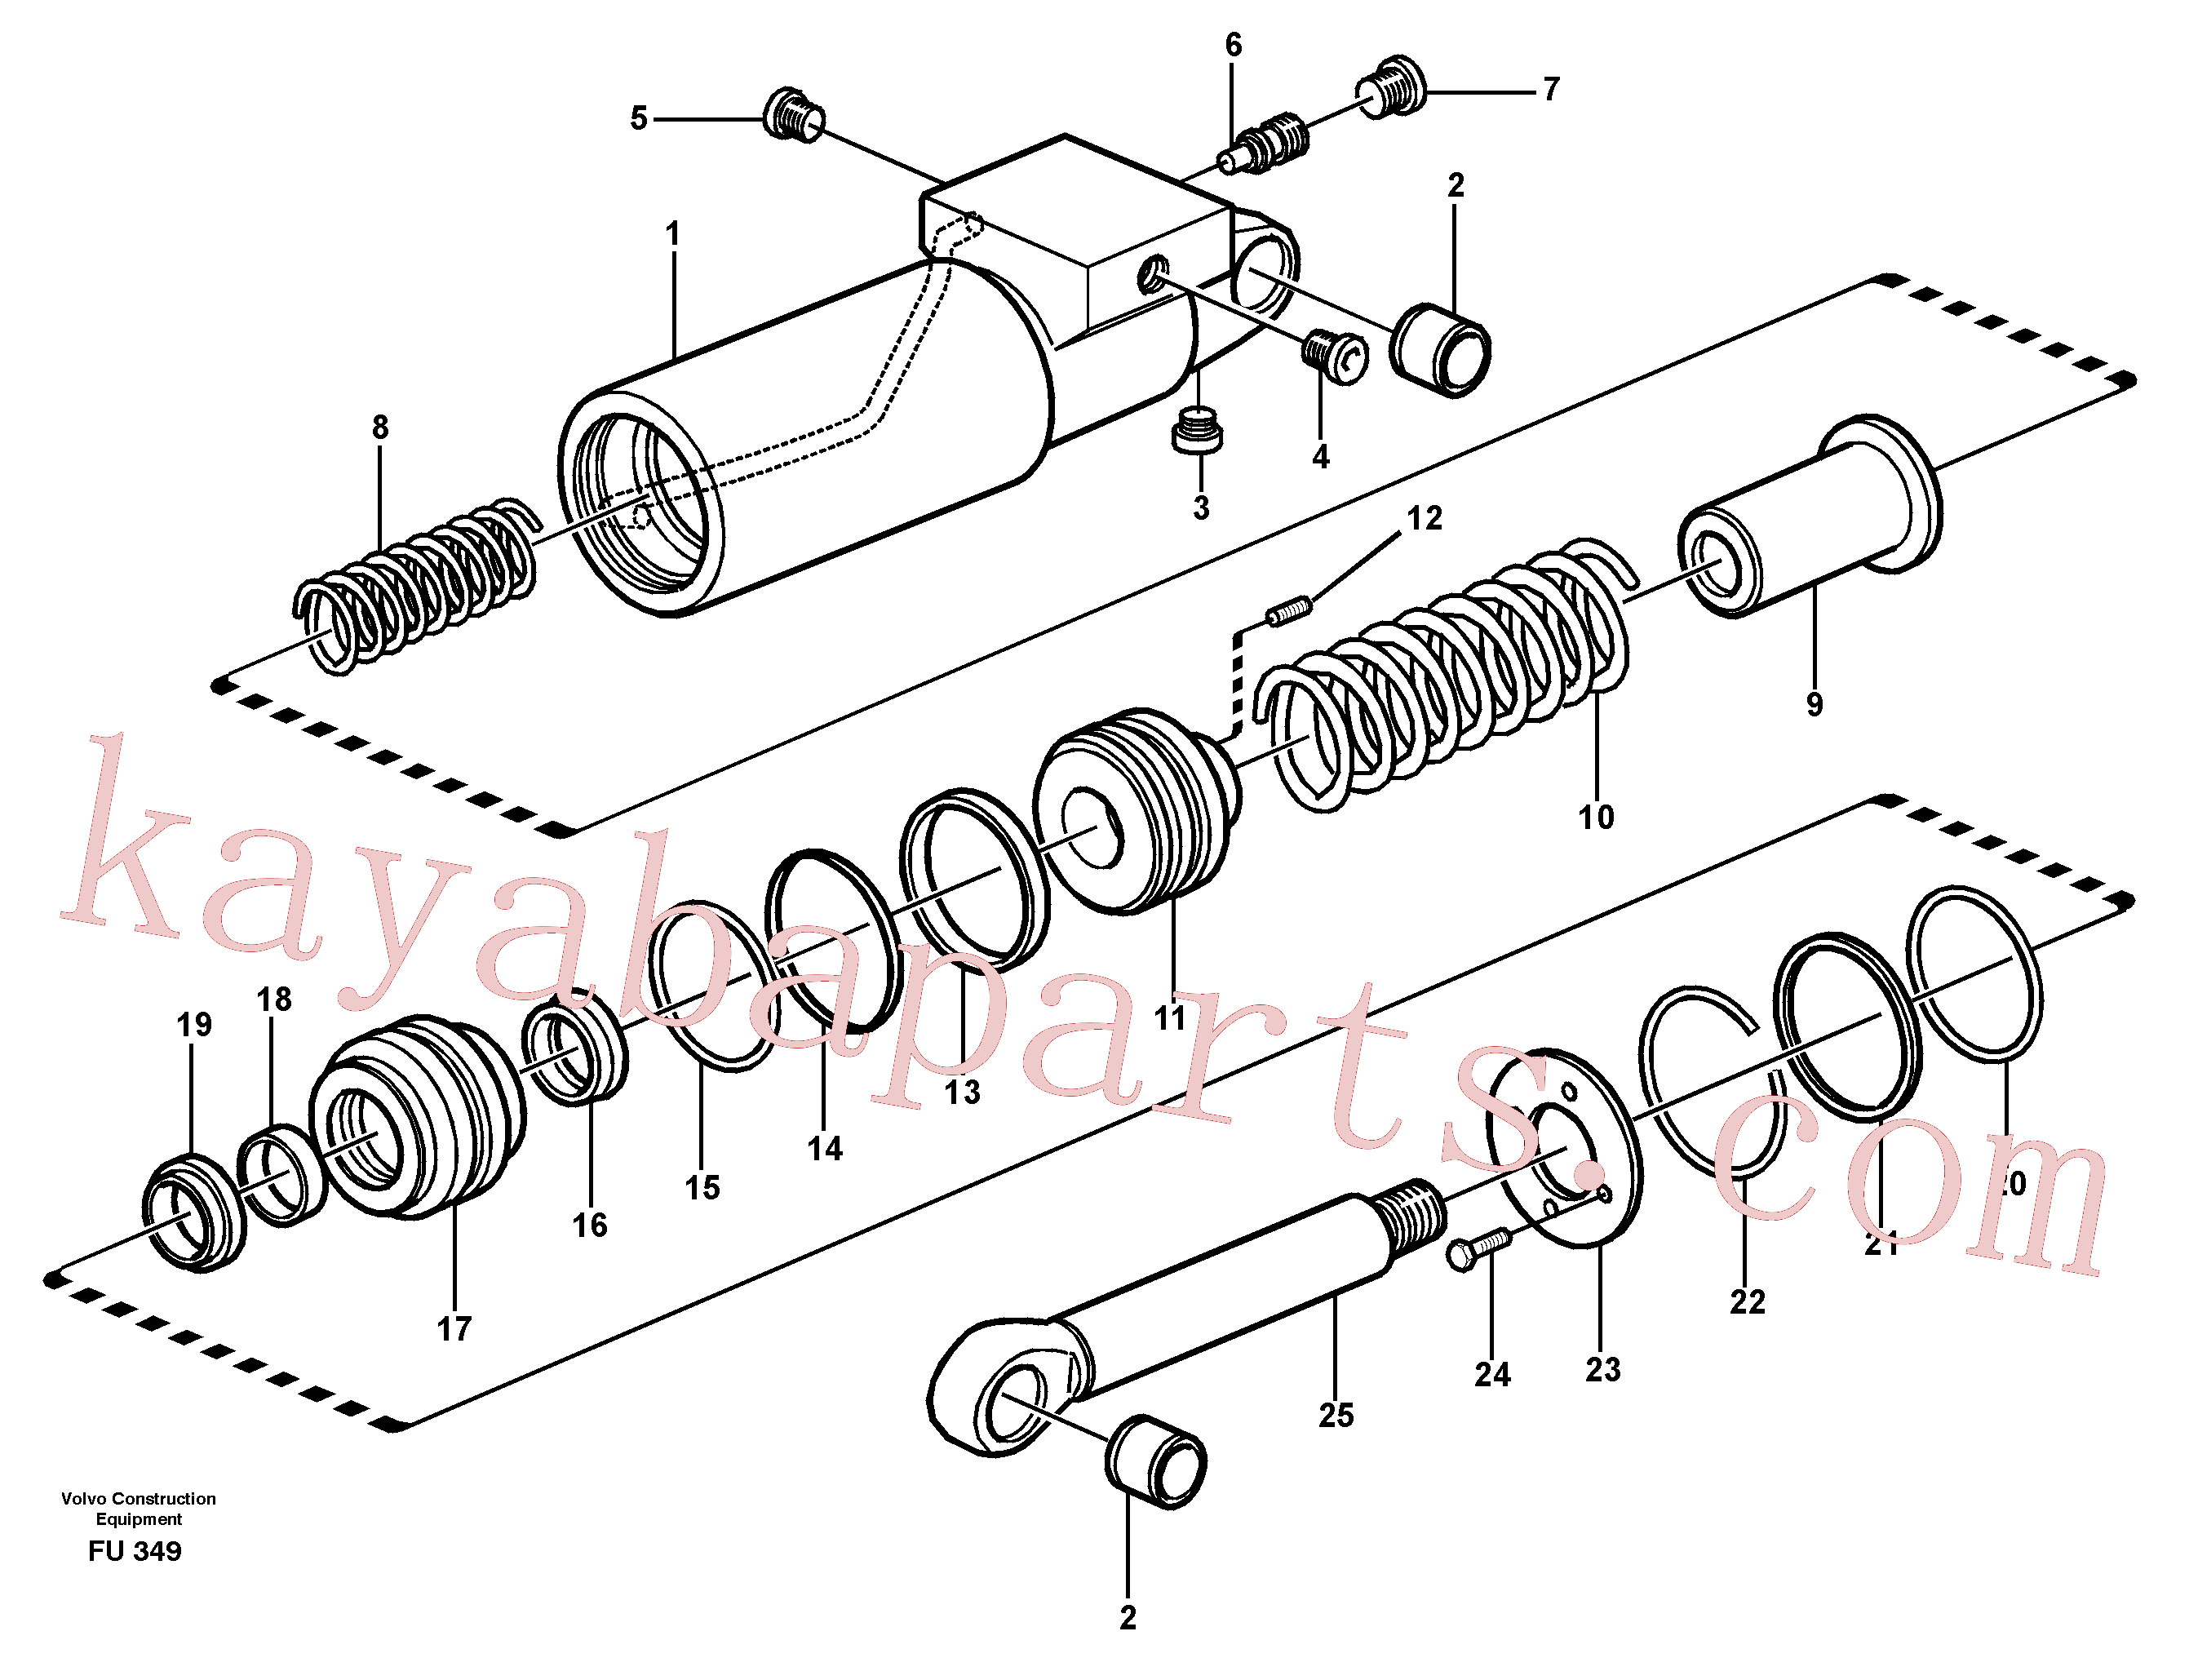 VOE993327 for Volvo Hydraulic cylinder(FU349 assembly)